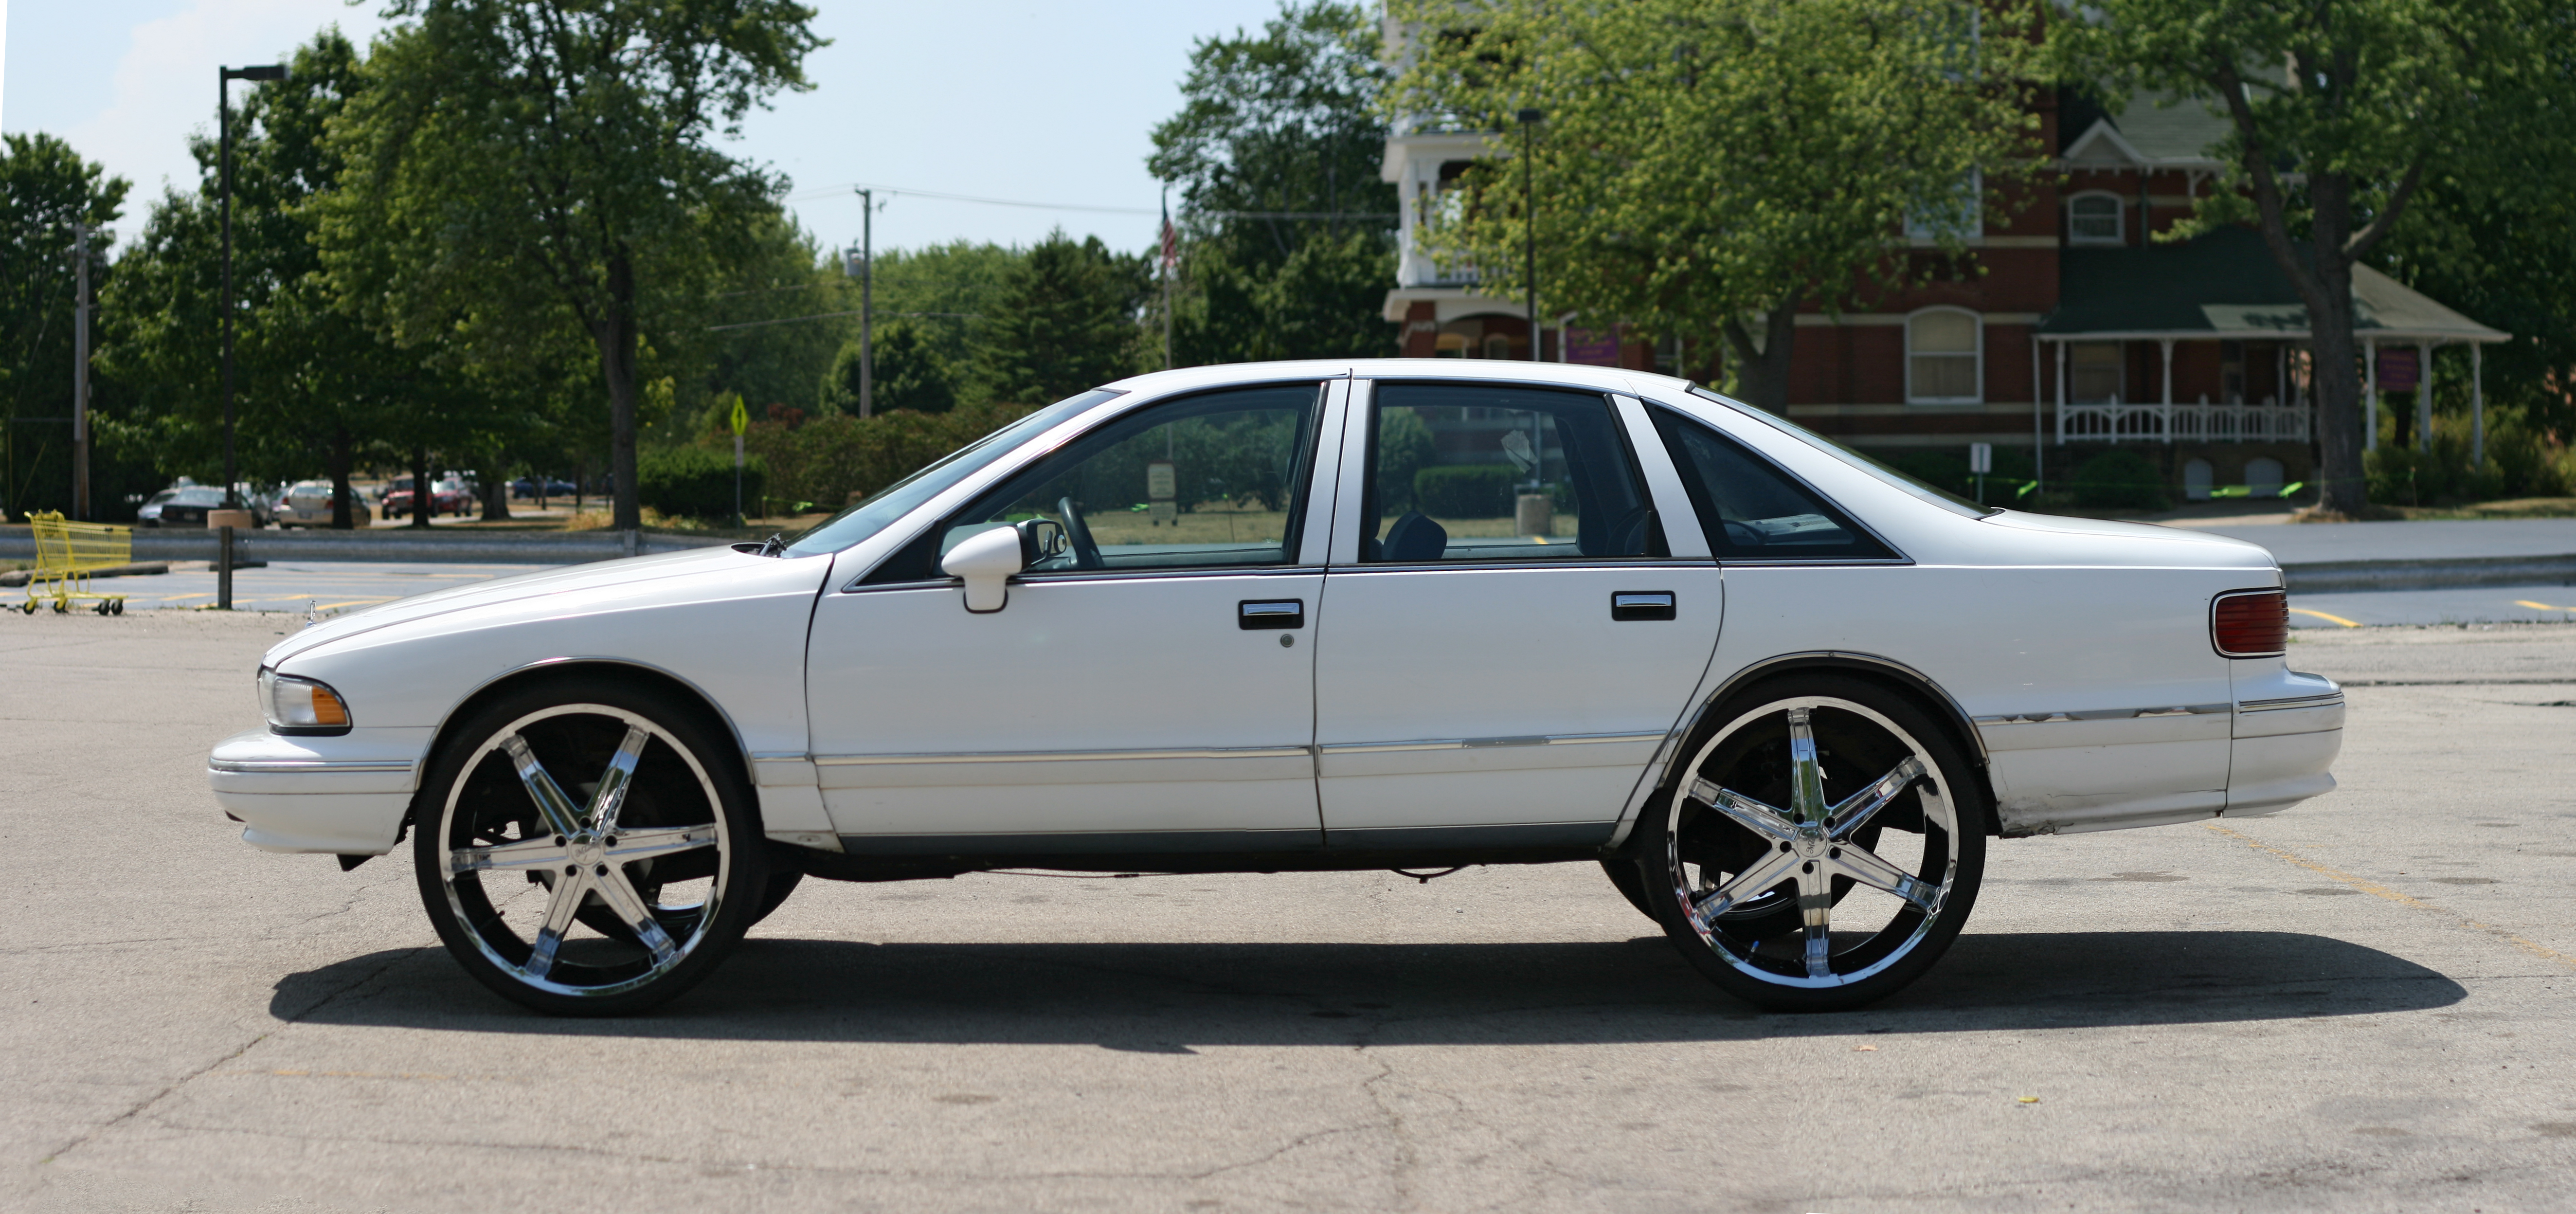 Typical African-American car, African, Parking, Wheels, Tuning, HQ Photo